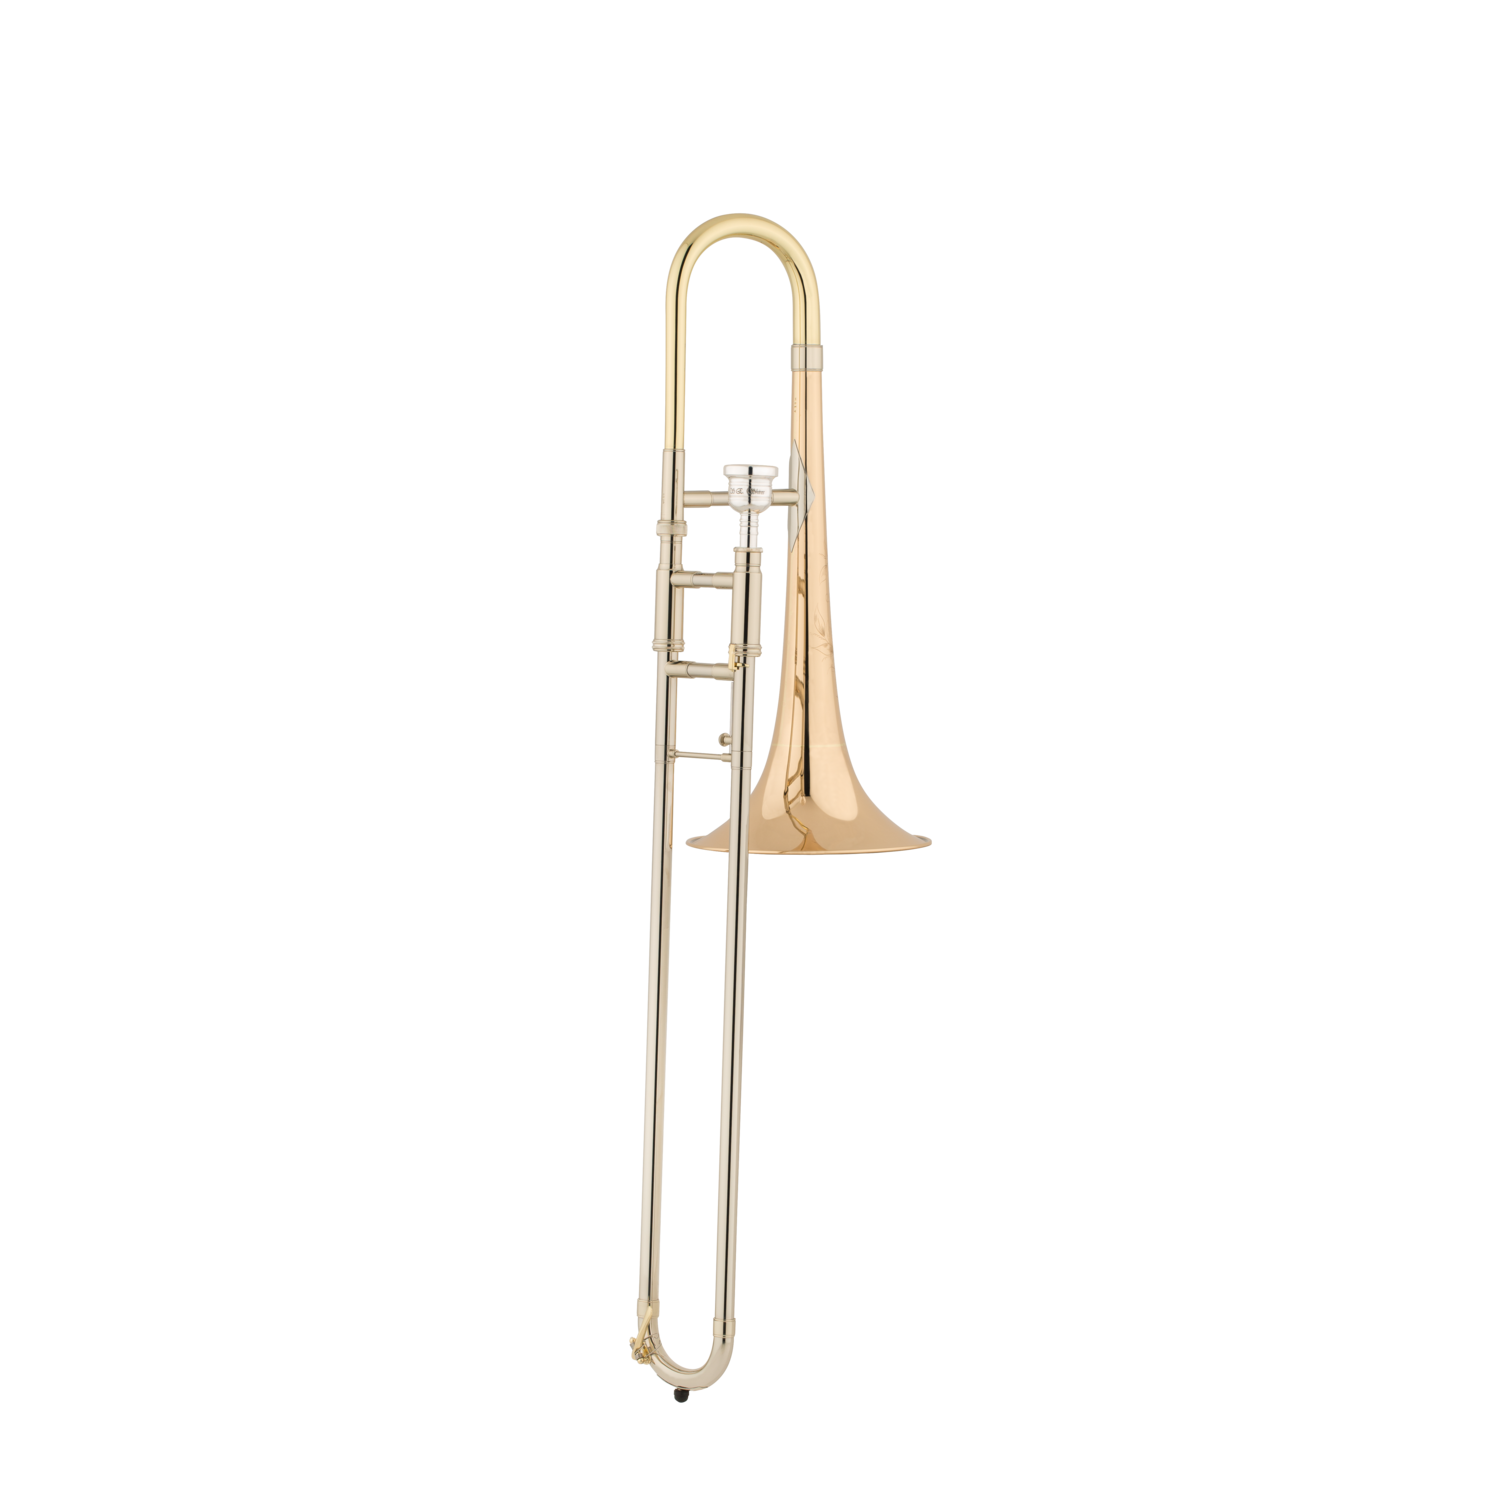 S.E. Shires - Model TBALTSC - Custom Alto Trombone-Trombone-S.E. Shires-Music Elements